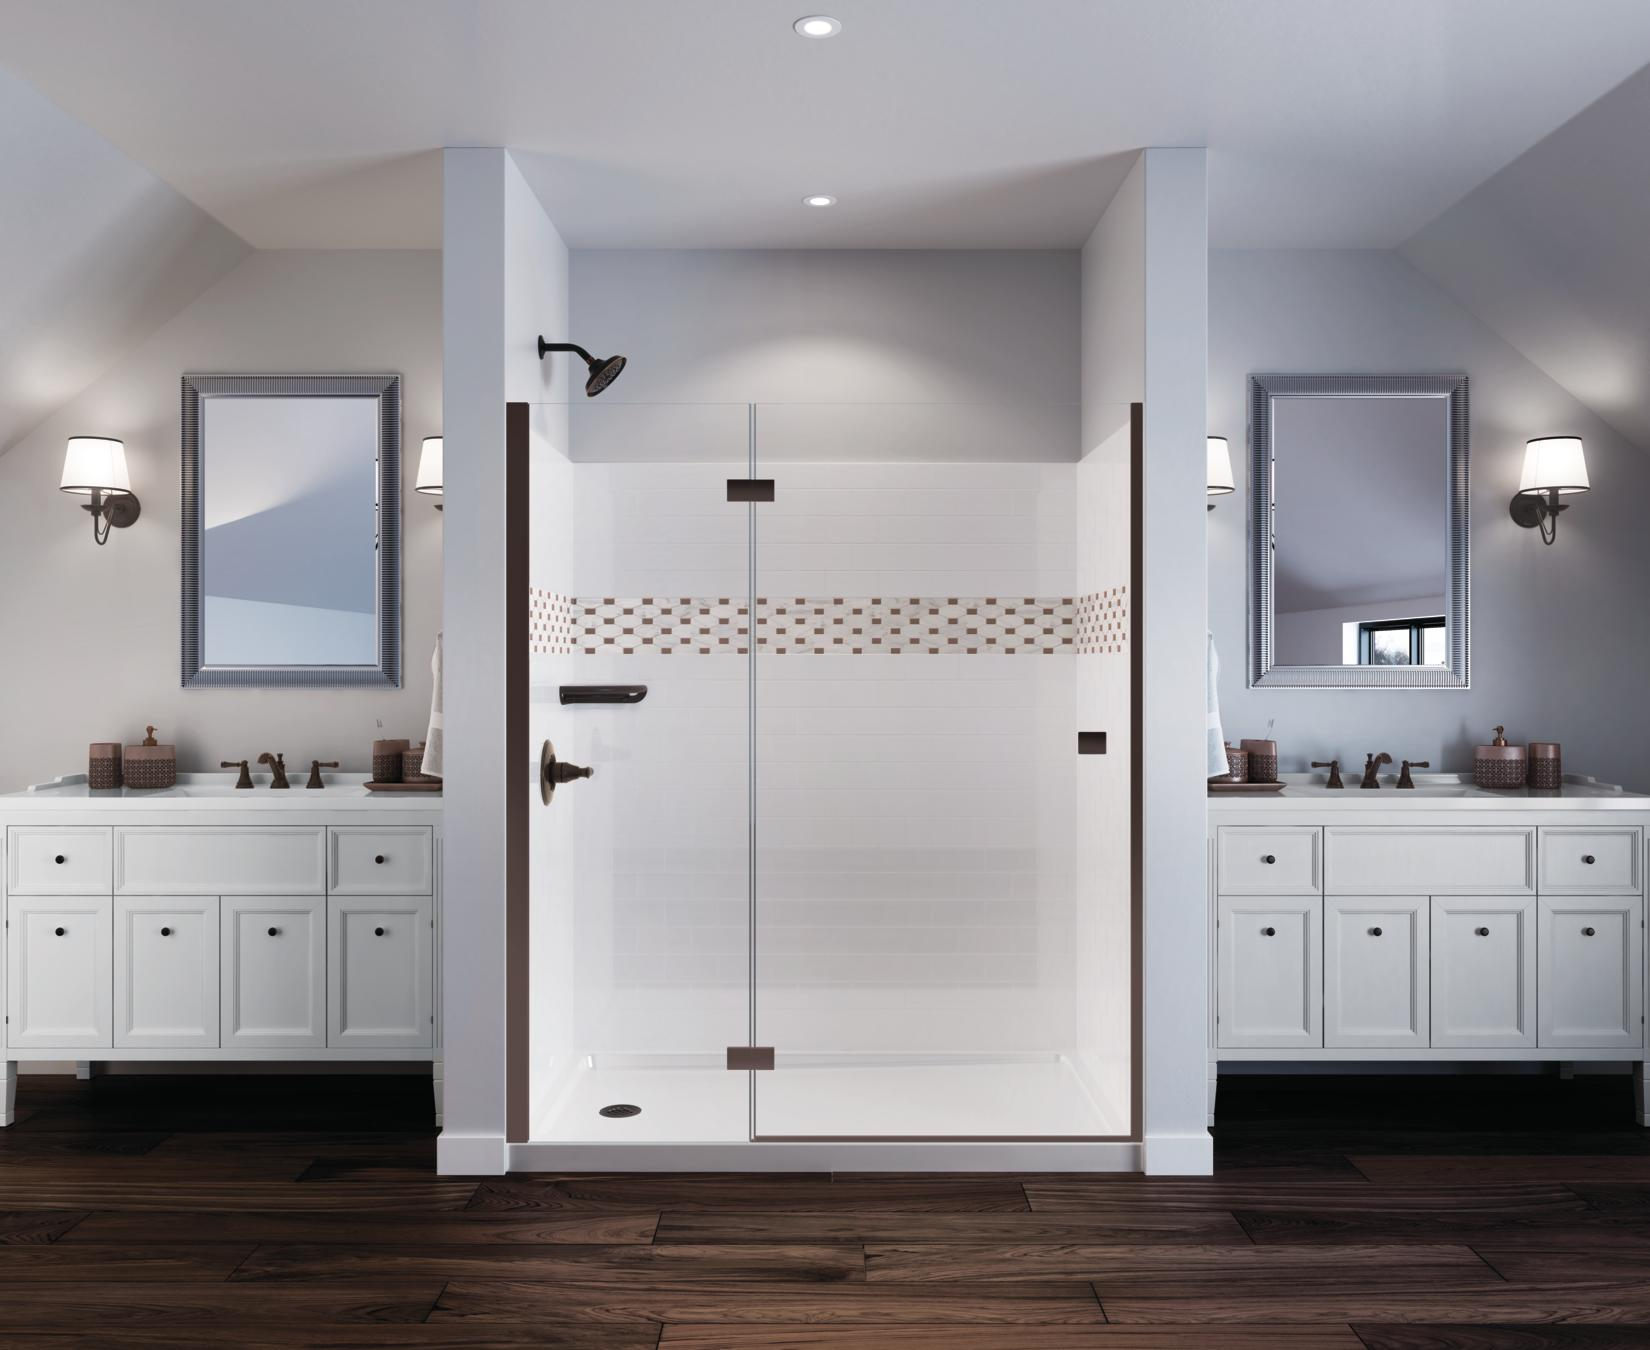 delta depot shower upstile the customizable home bath bathroom collection